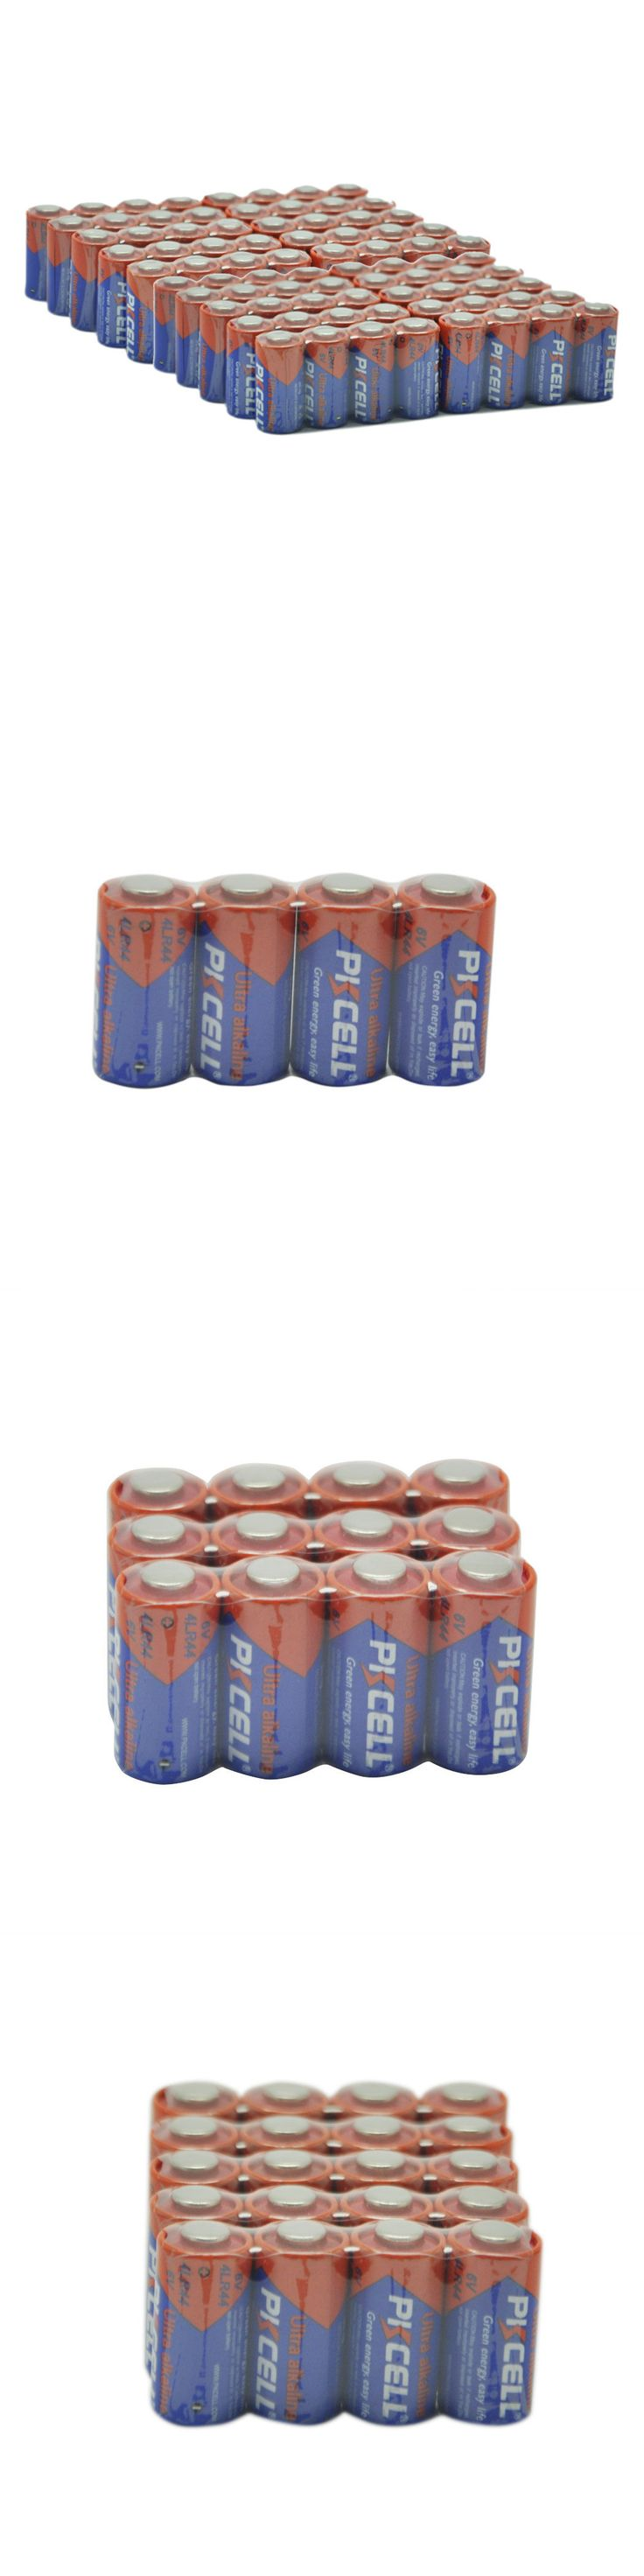 Batteries and Power Accessories: 100 Pack 6V Alkaline Batteries 4Lr44 28A Px28a 4G13 Dog Collars Battery Pkcell -> BUY IT NOW ONLY: $38.99 on eBay!